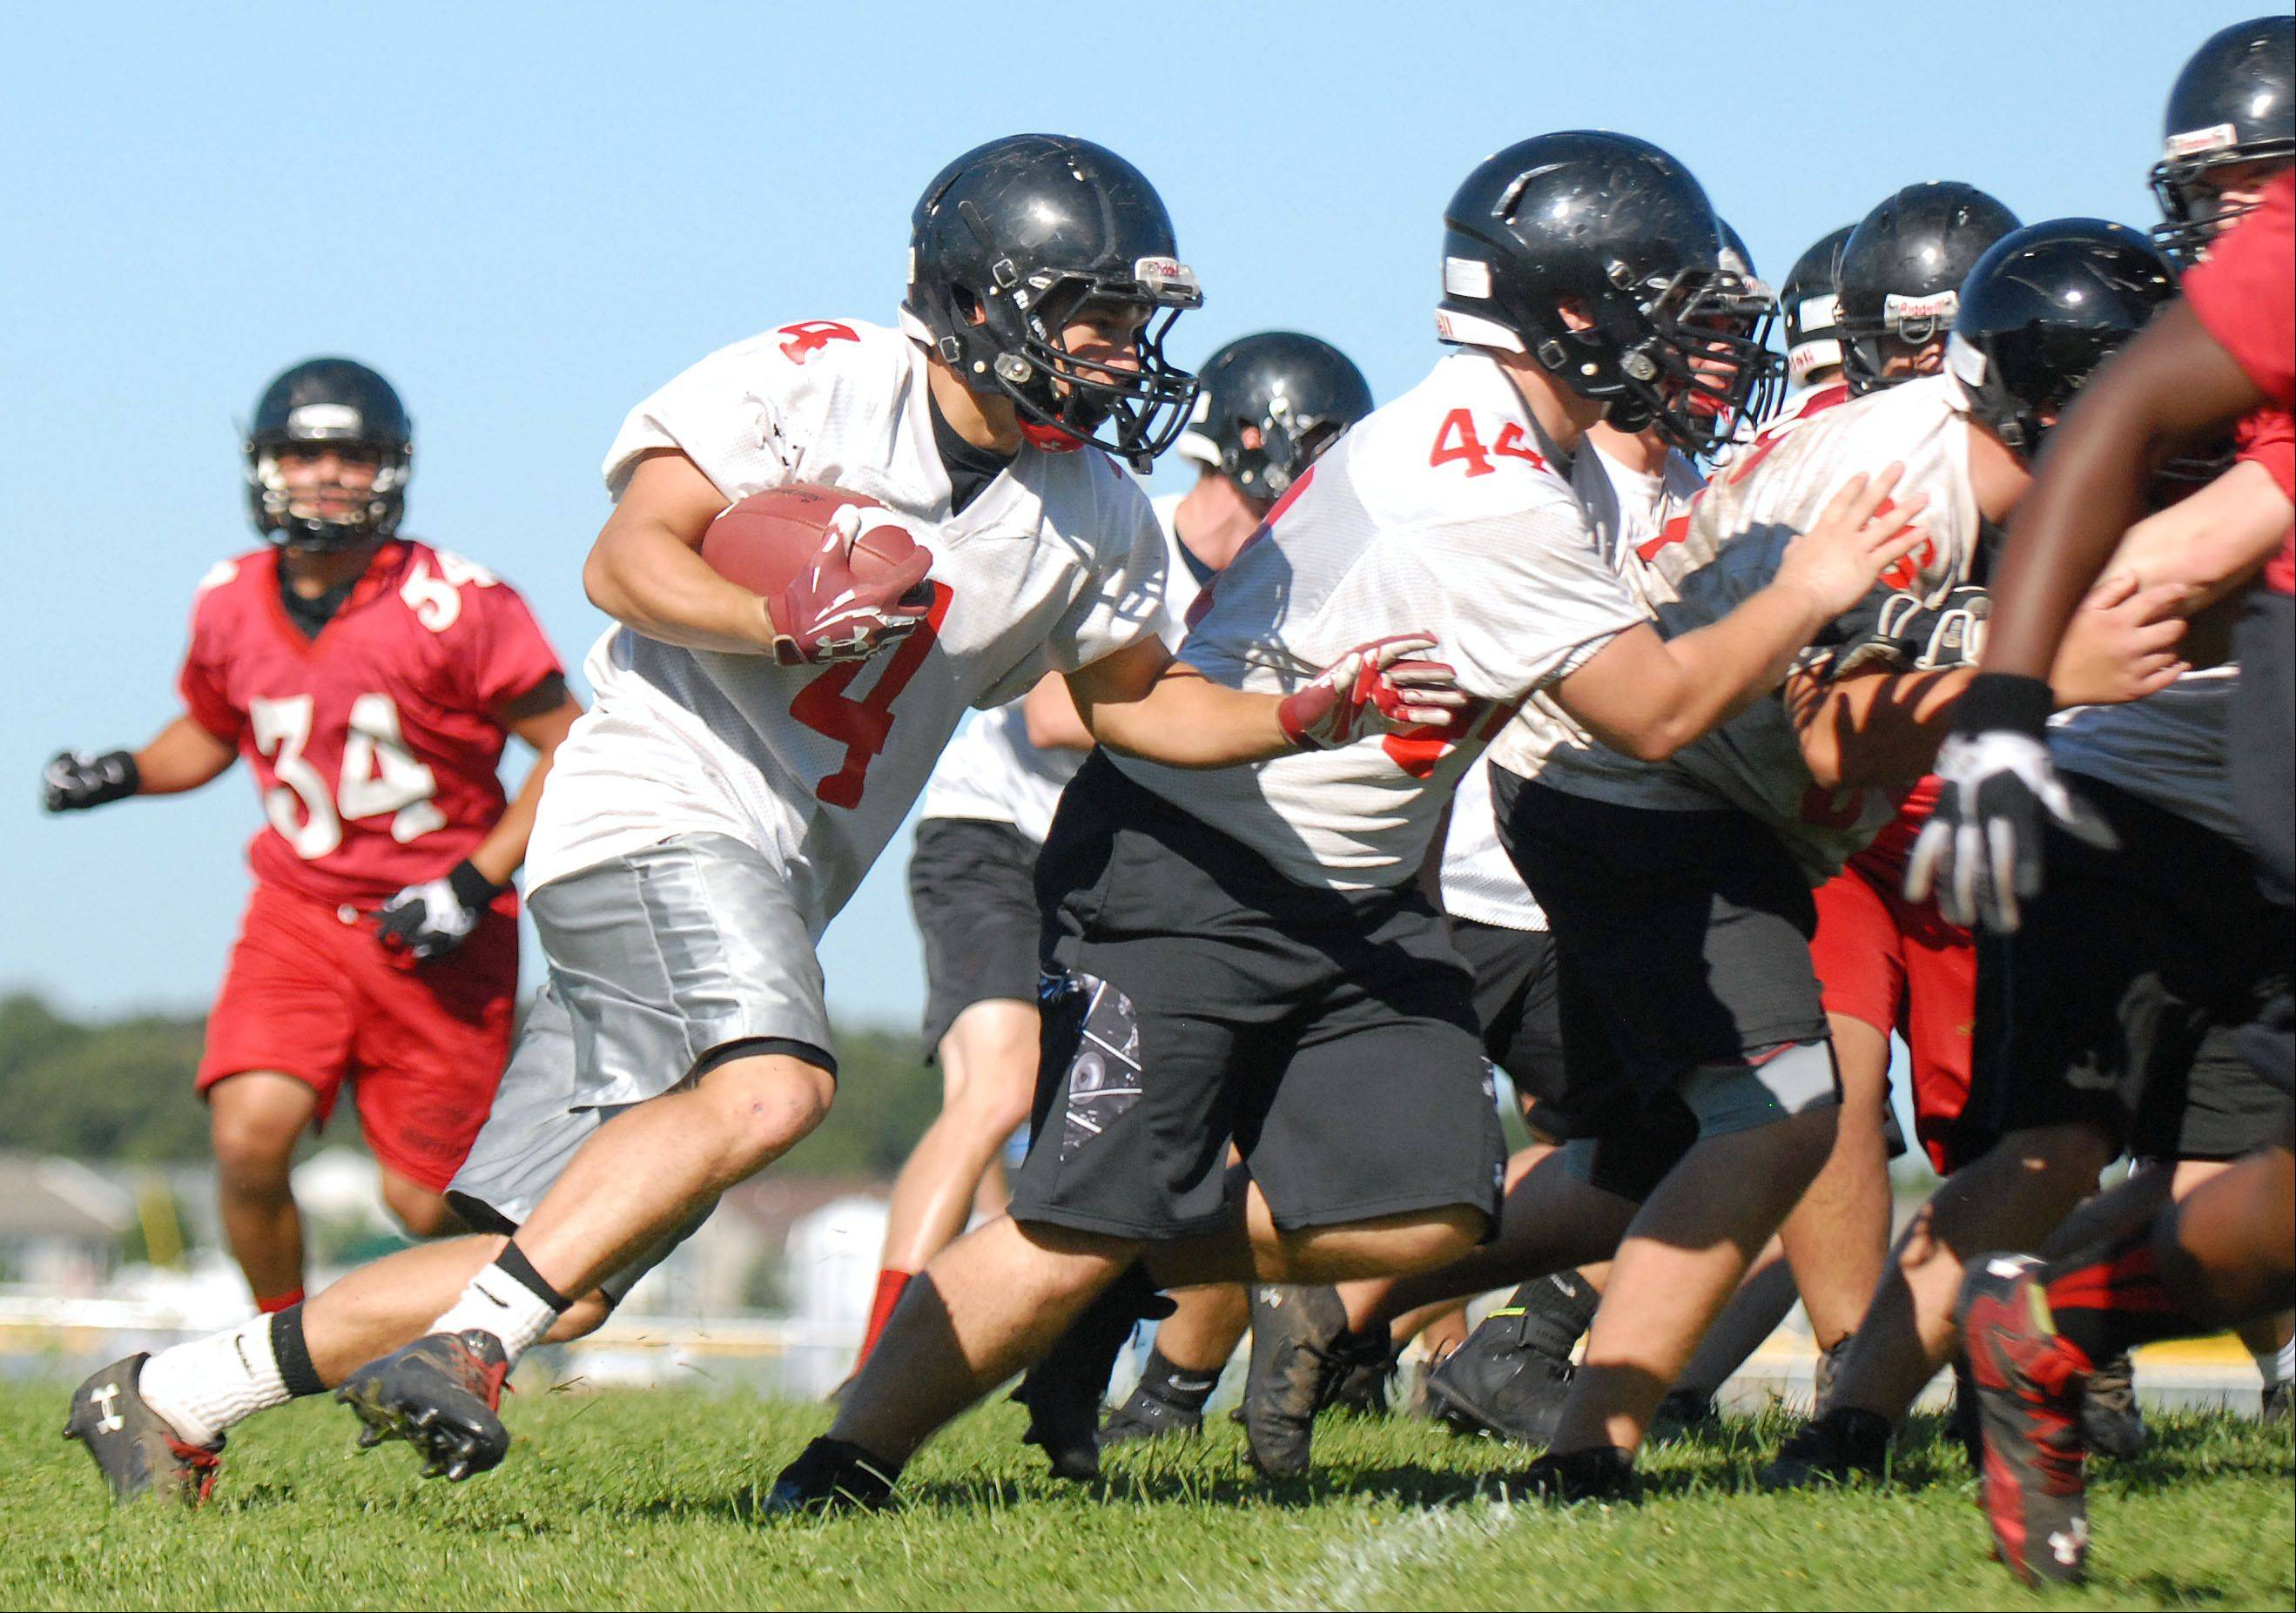 Senior Mitchell Kawell takes off with the ball during the first day of practice at Huntley.